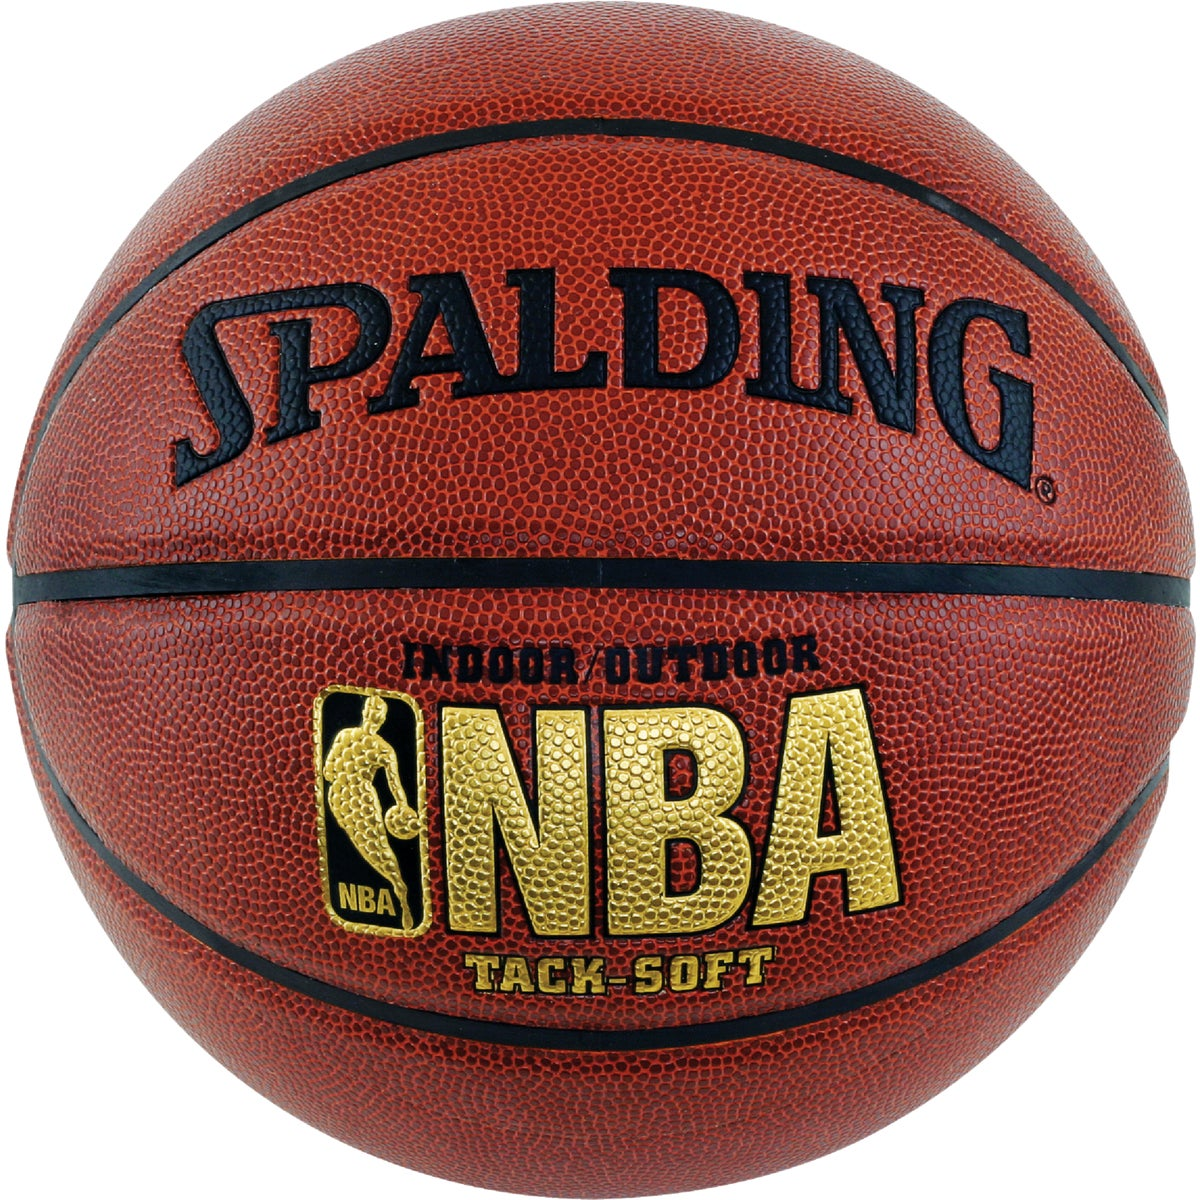 29.5 OFFICIAL BASKETBALL